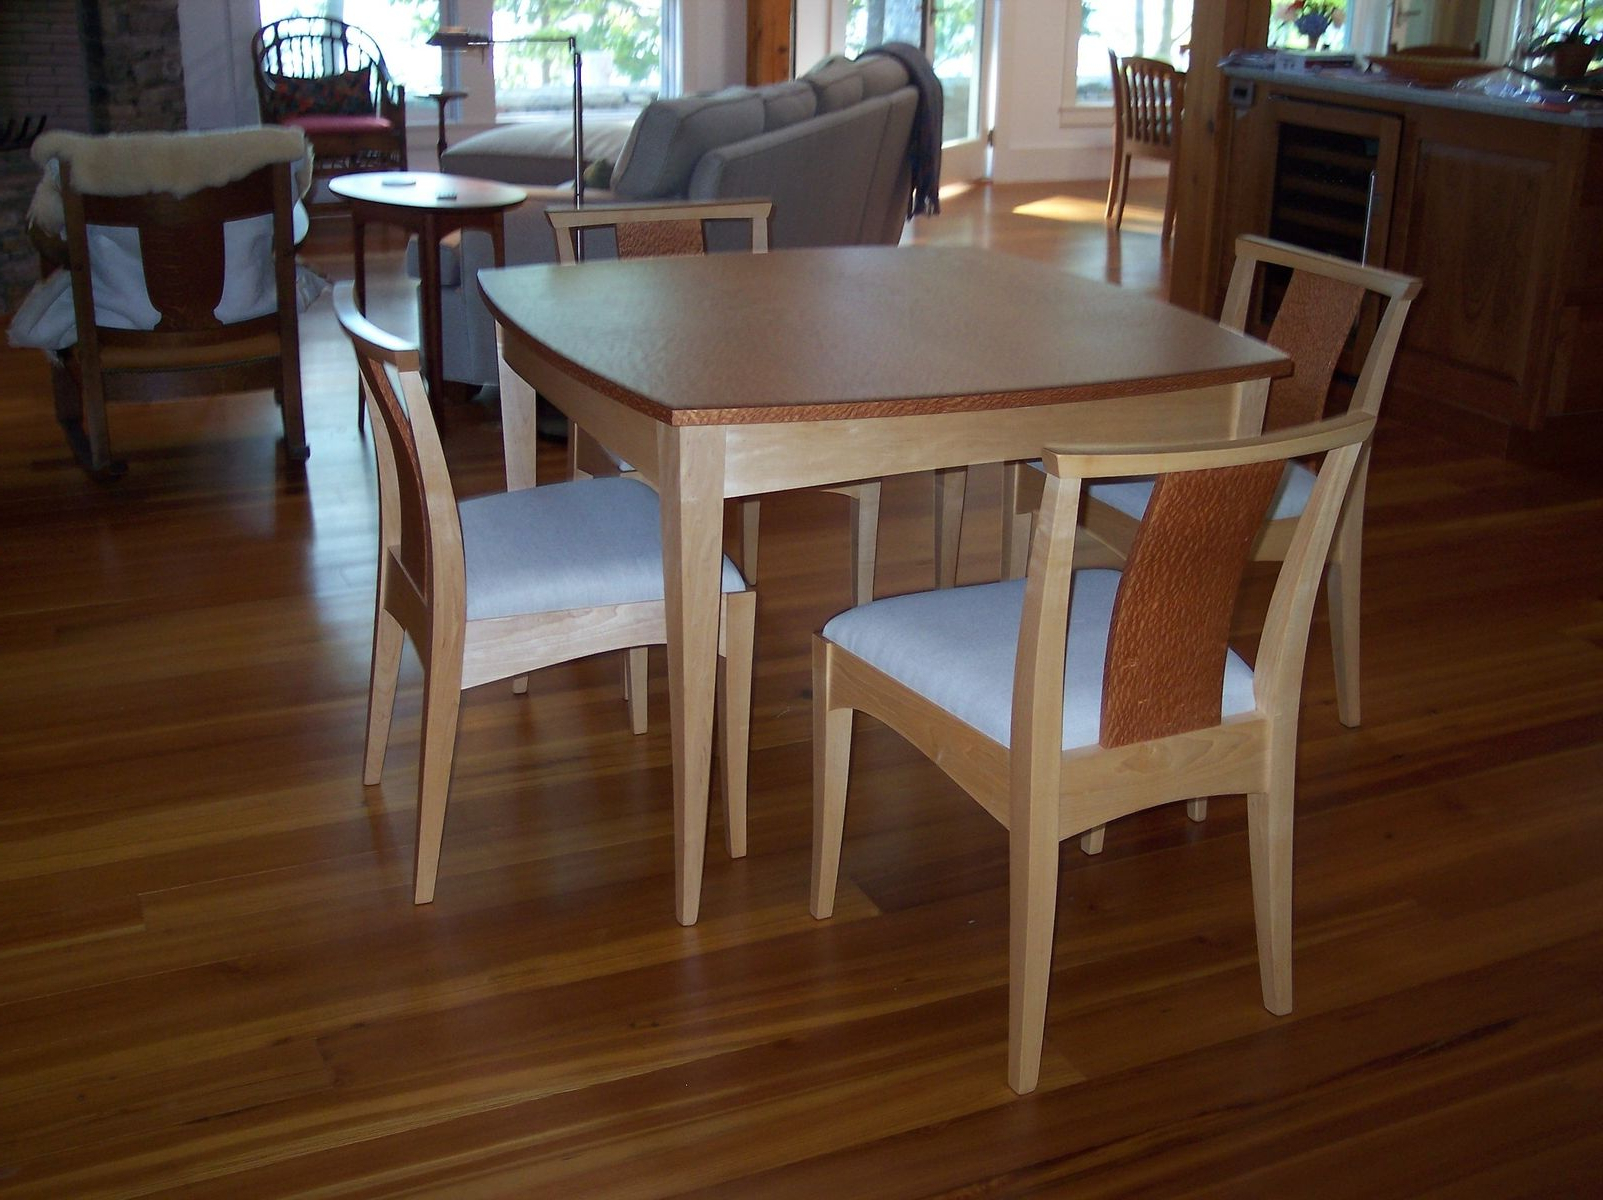 Hand Made Curvy, Square Small Dining Table And Chairs In Most Current Small Rustic Look Dining Tables (View 26 of 30)